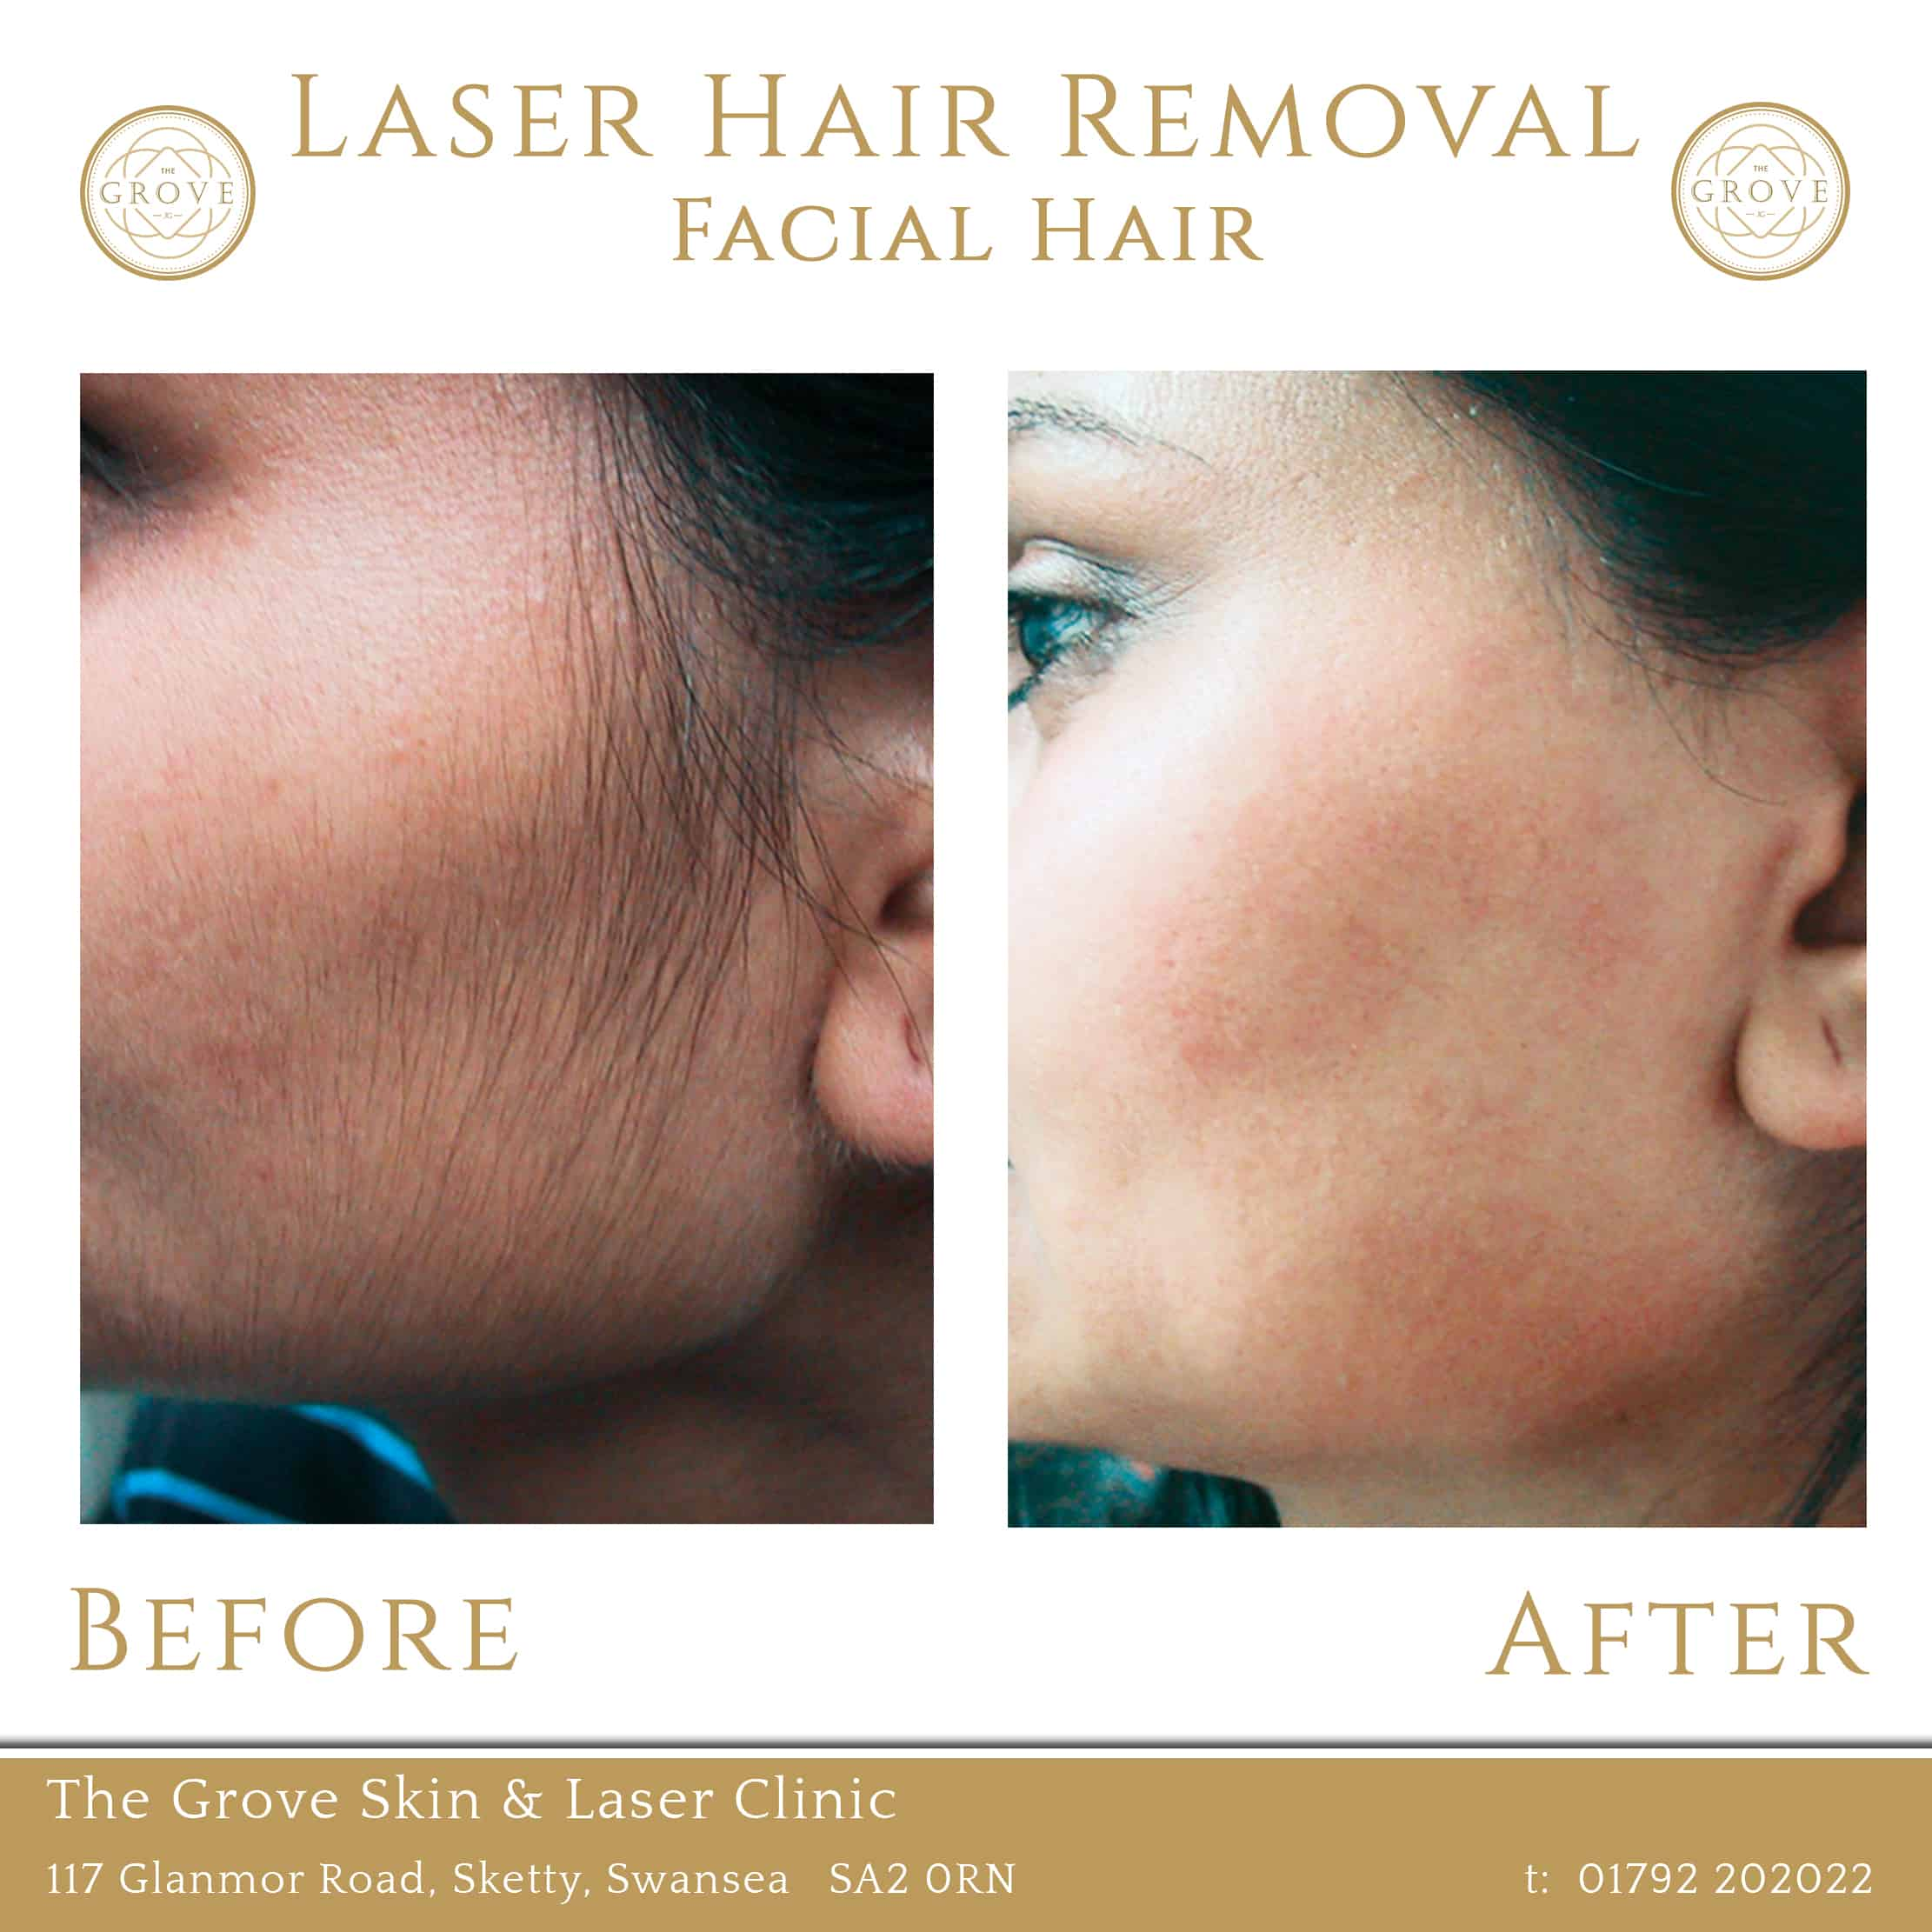 Laser Facial Hair Removal Before and After